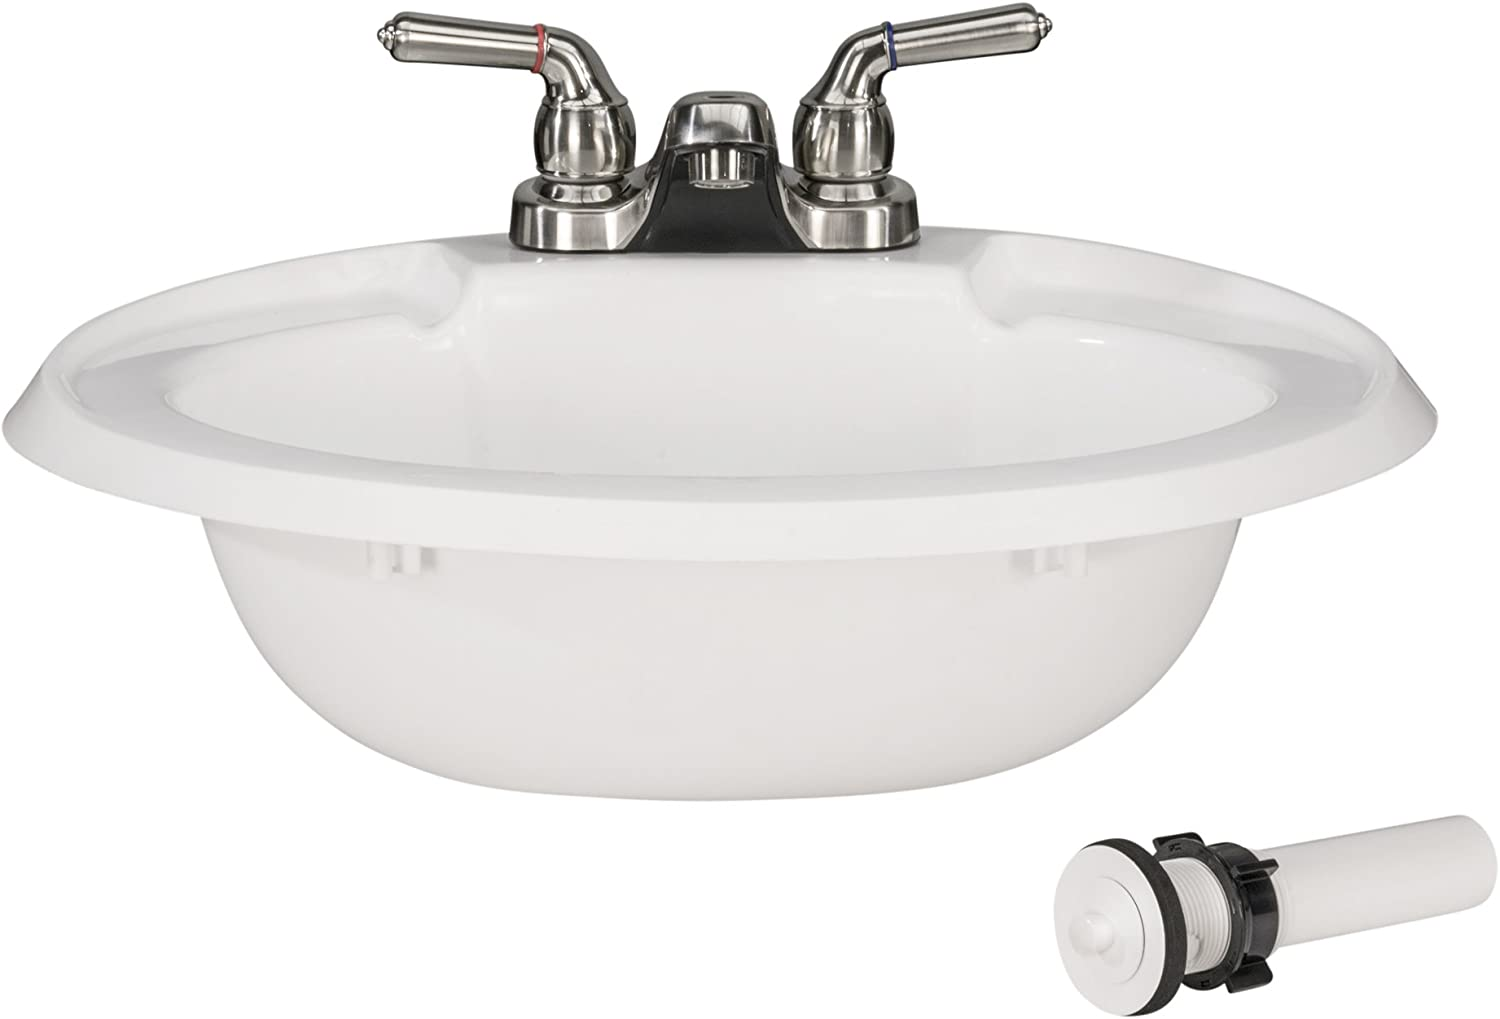 Amazon Com Recpro Oval Rv Bathroom Sink W Drain Stopper And Brushed Nickel Teapot Faucet White Single Bowl Lavatory Sink Camper Sink 20x17 Plastic Automotive